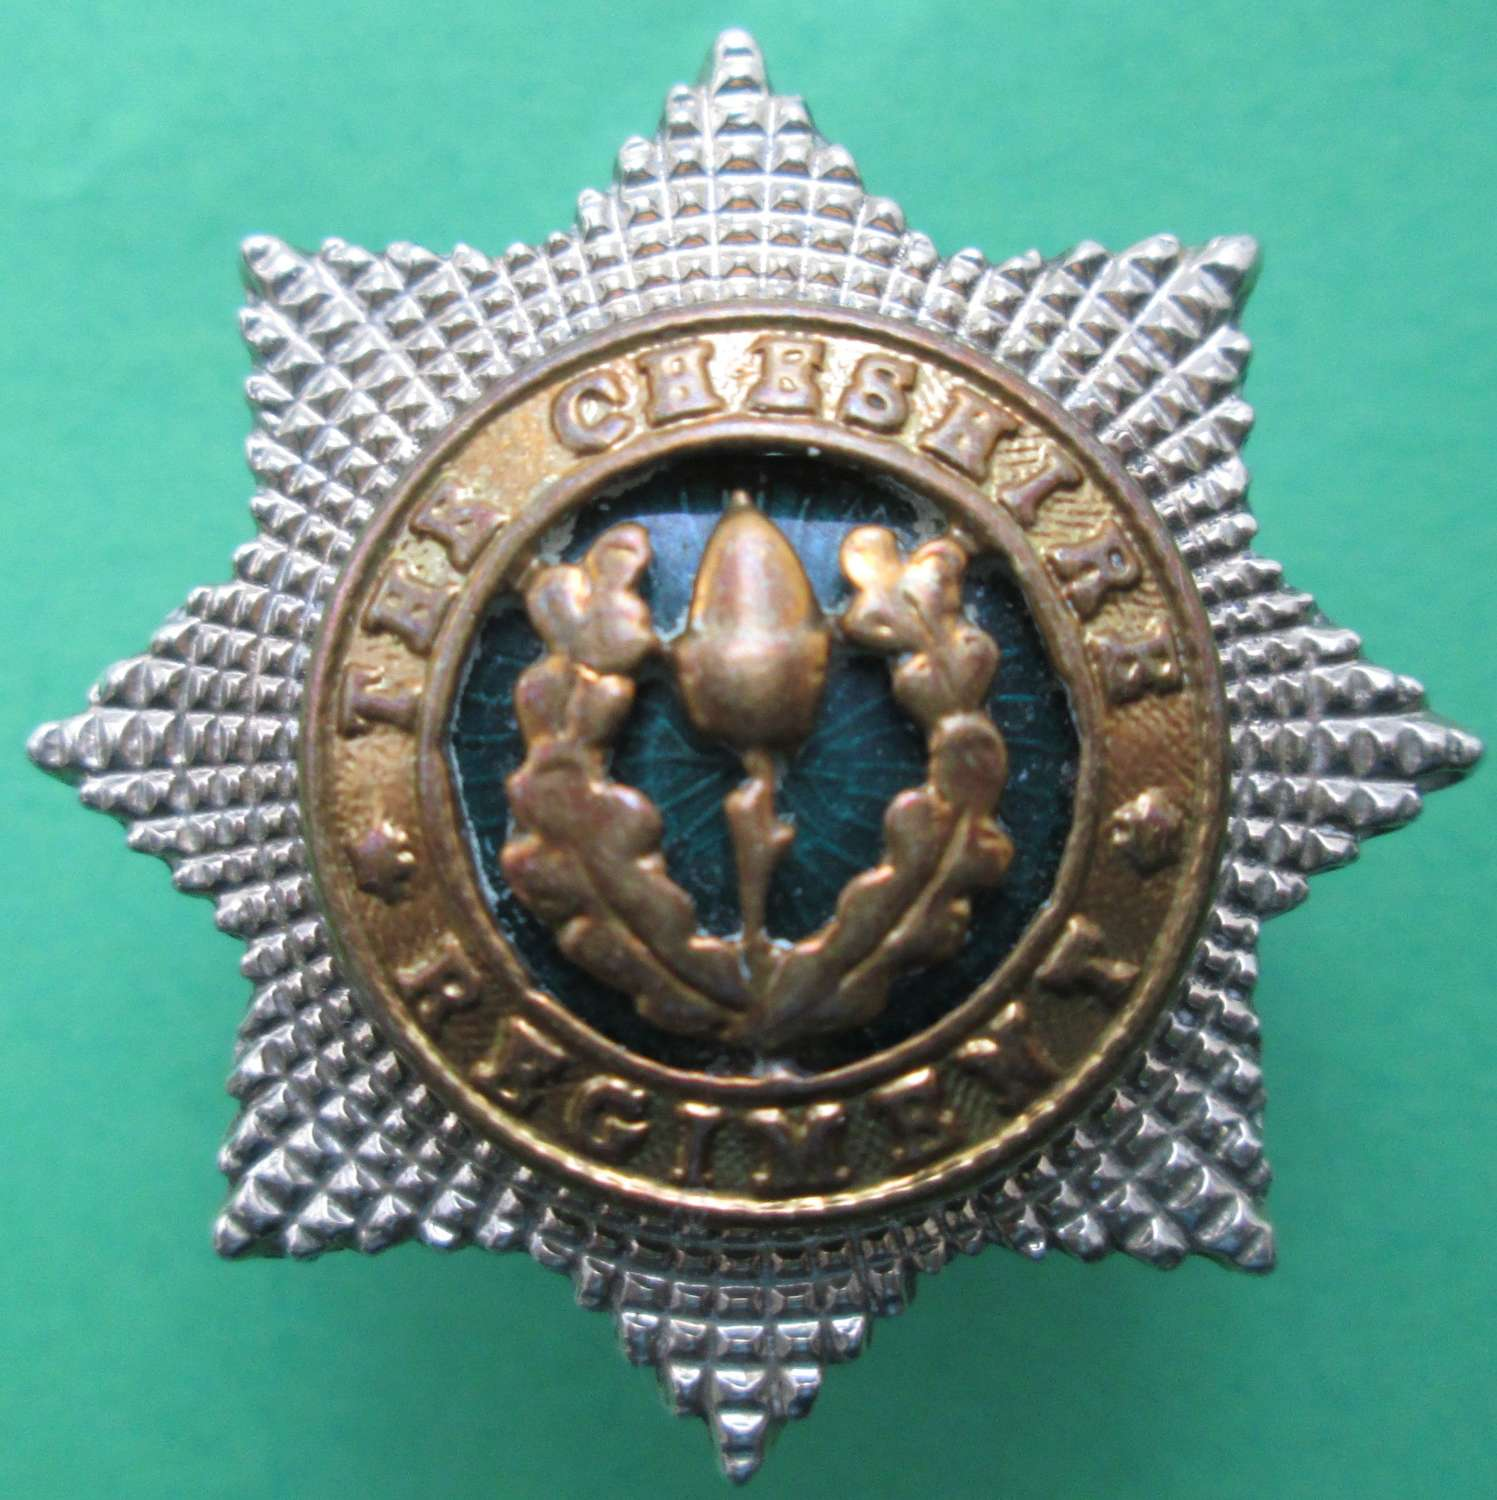 SILVER PLATED OFFICER'S CHESHIRE REGIMENT COLLAR